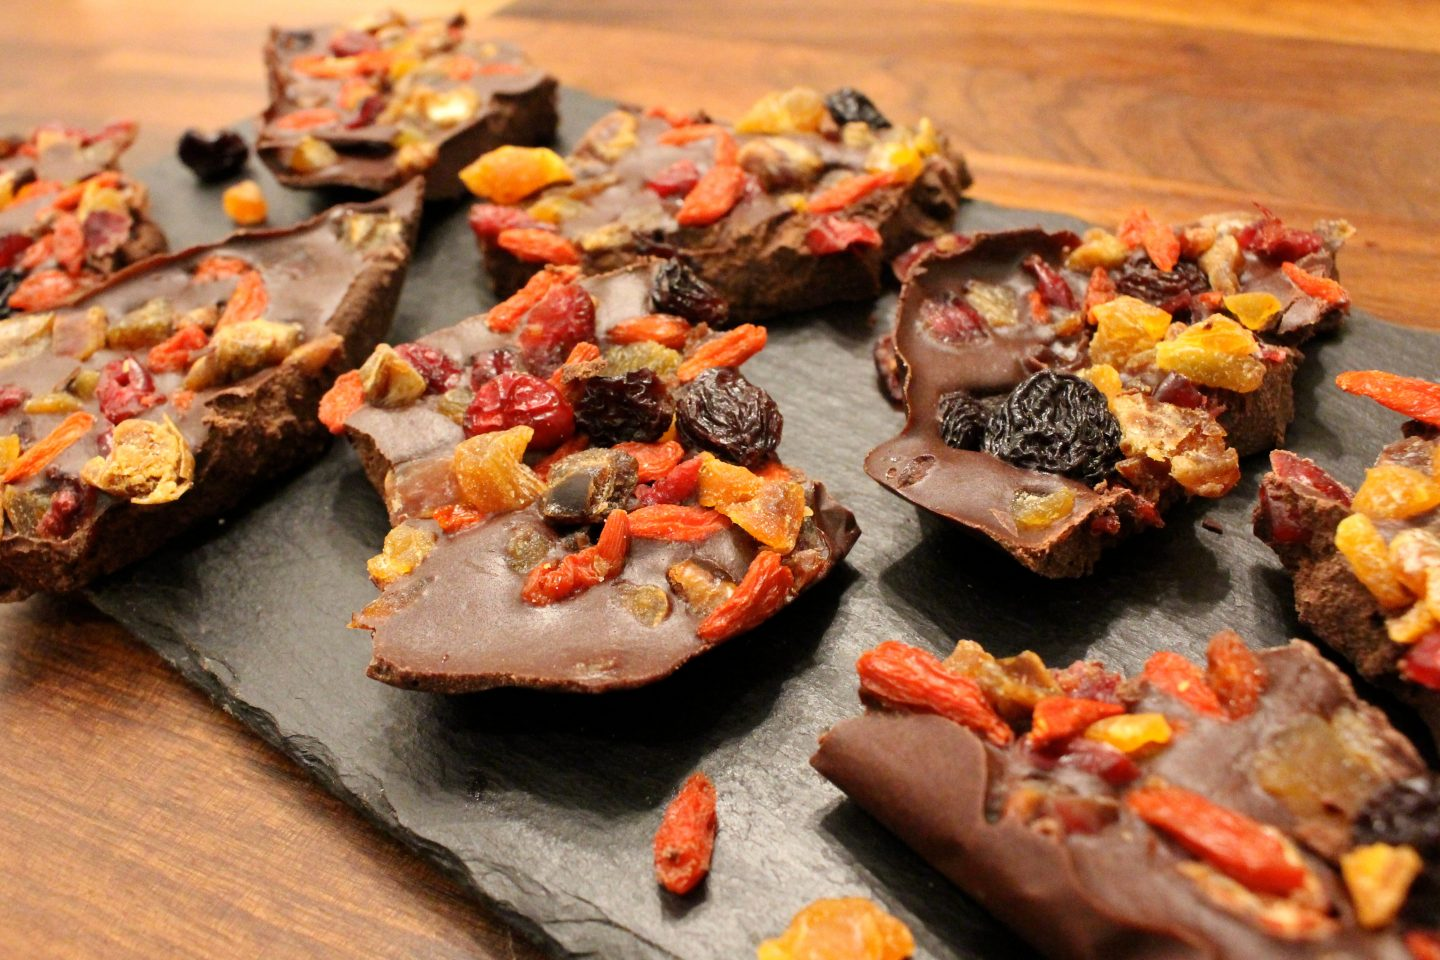 Homemade Dark Chocolate Bark